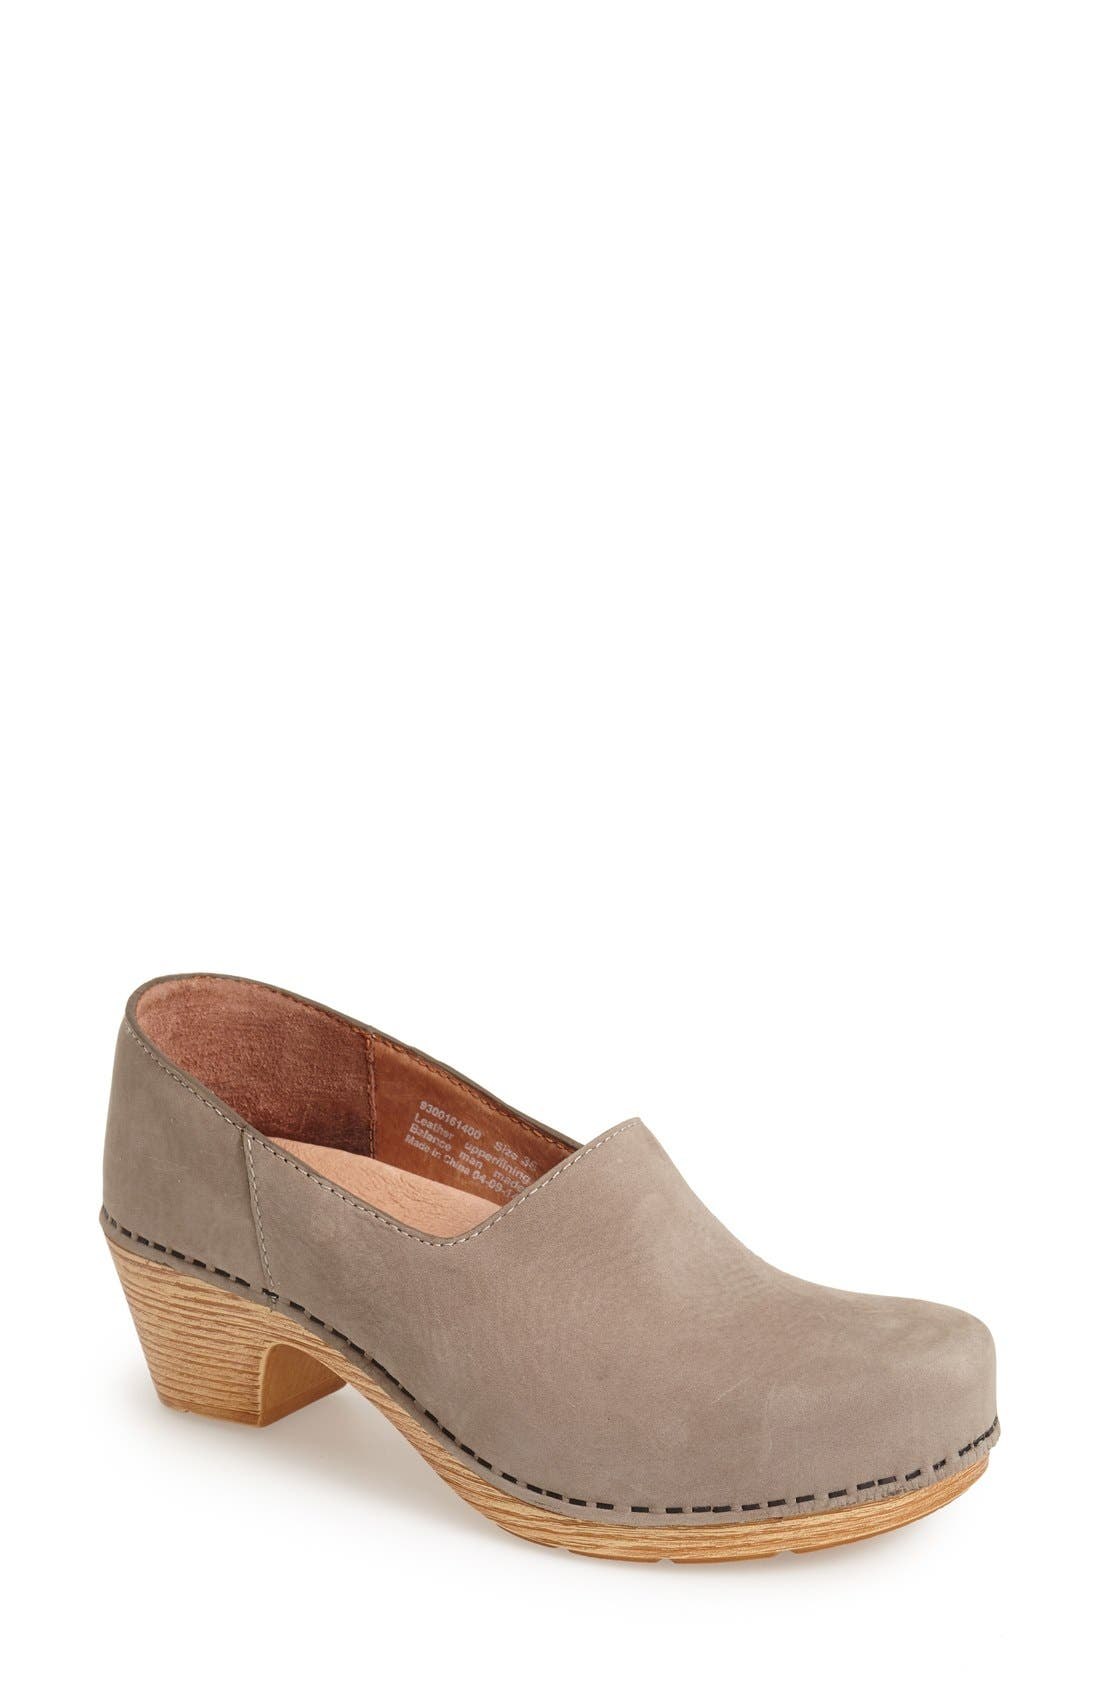 'Marisol' Pump,                         Main,                         color, Taupe